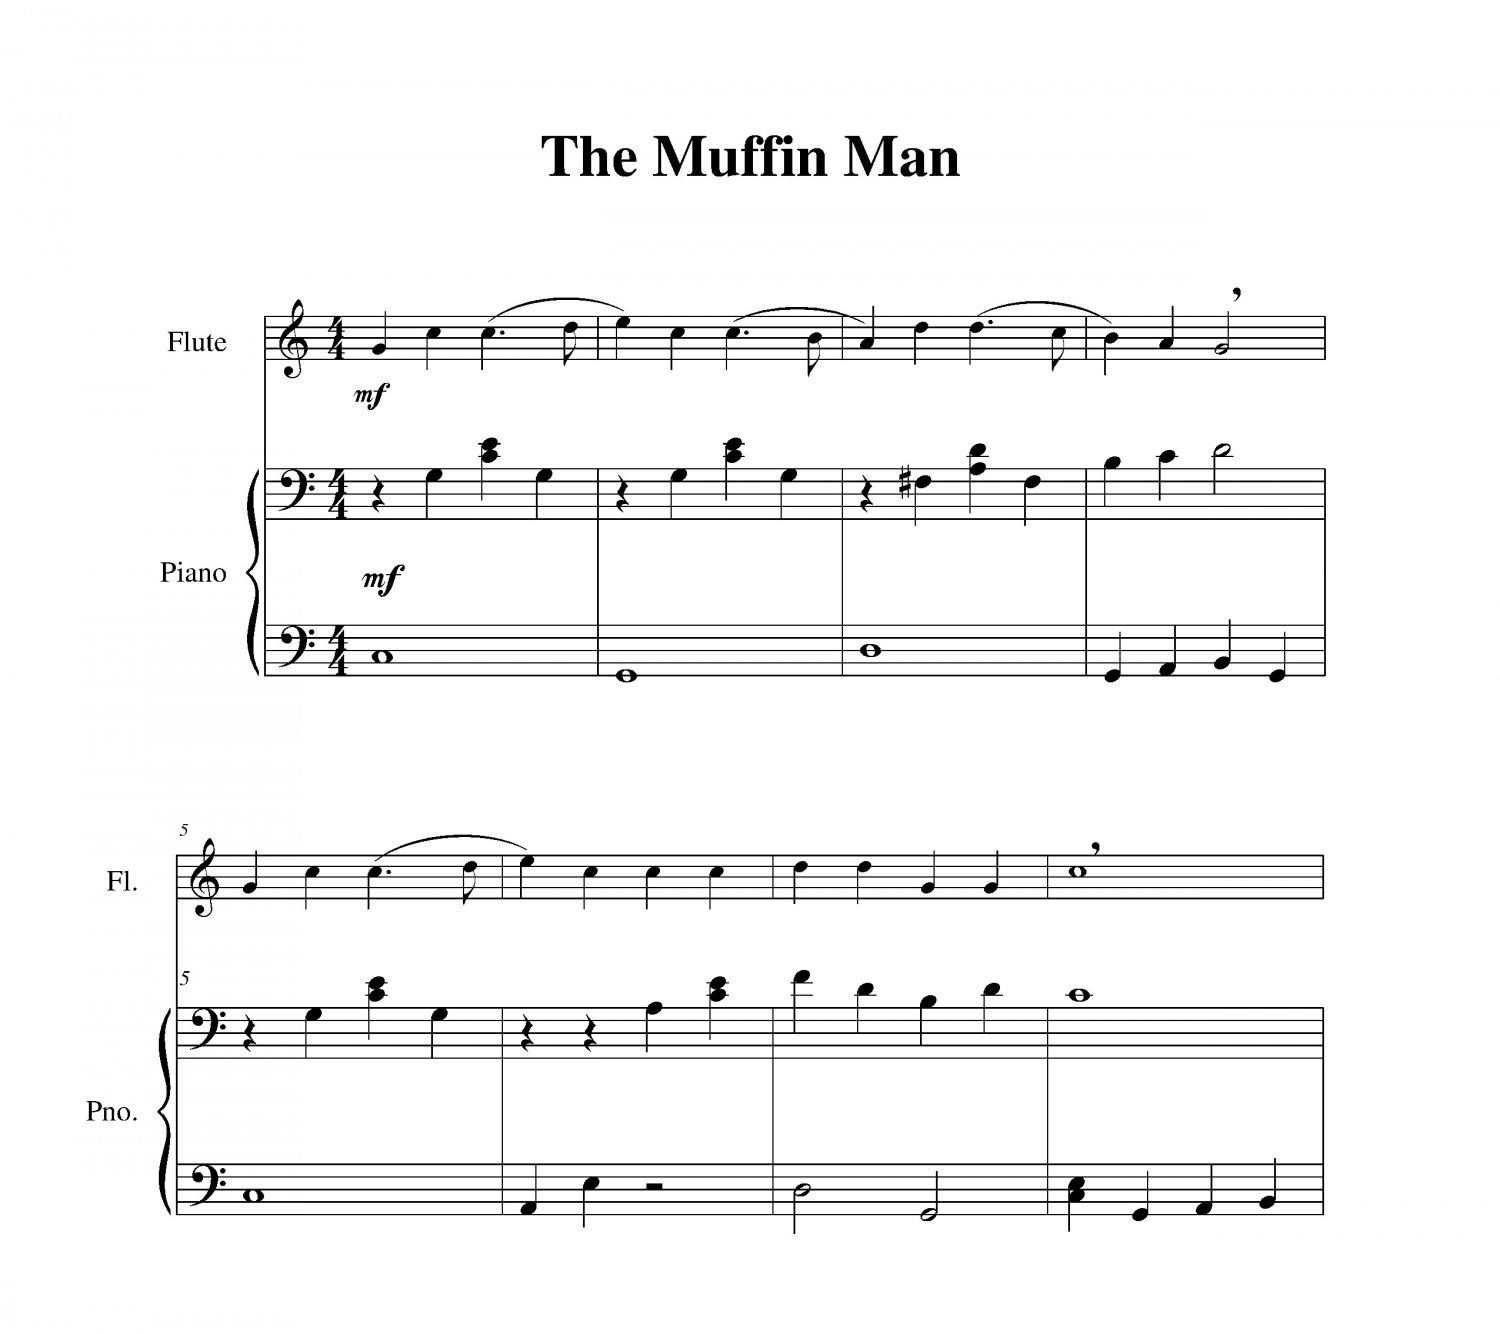 Muffin Man, The